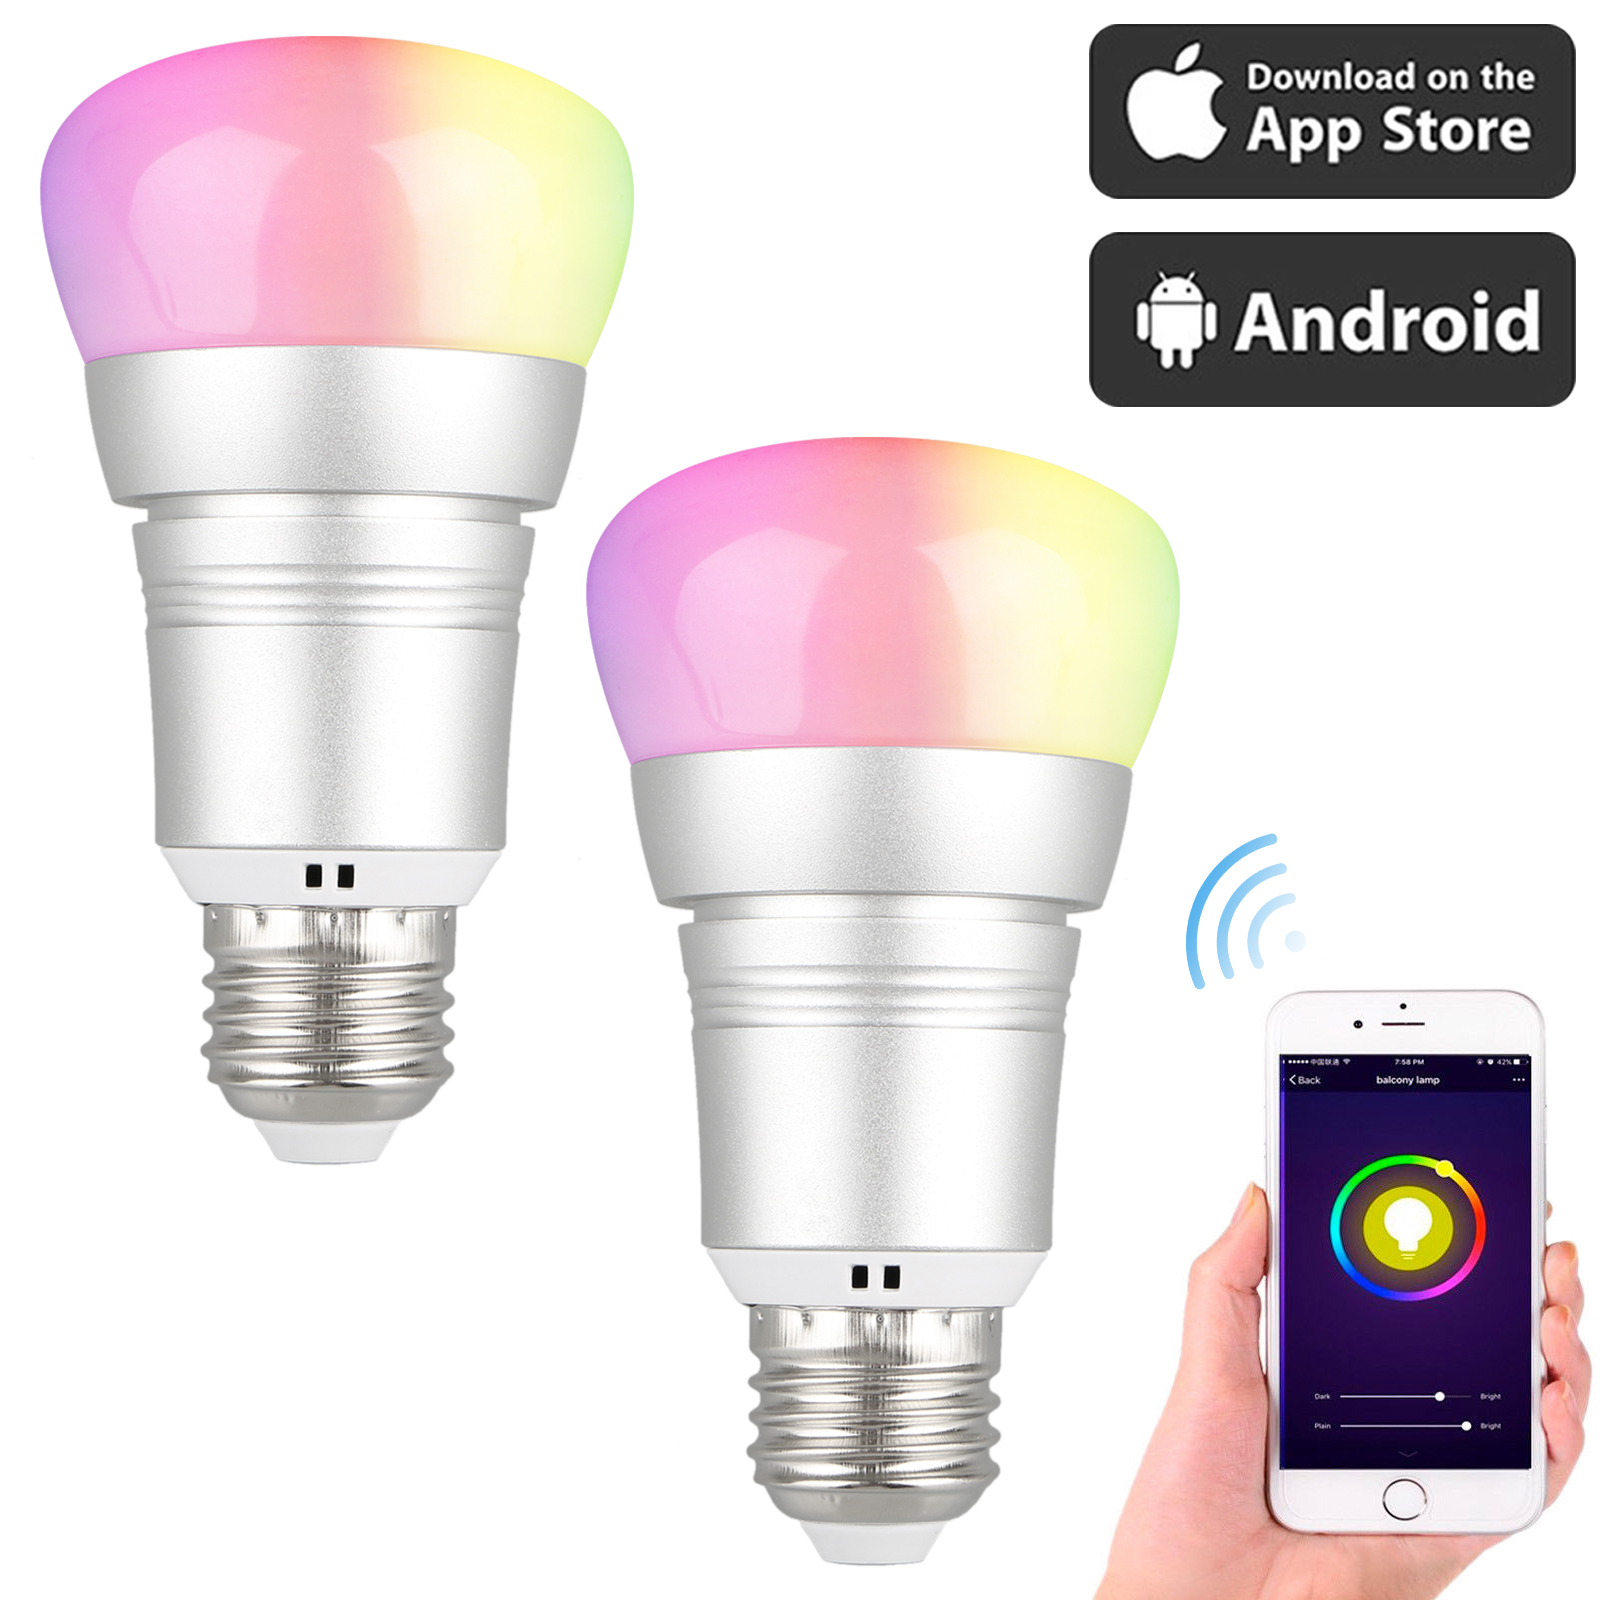 2-pack LED Smart WiFi Light Bulb, 7W (60W Incandescent Equivalent), RGB Multicolor Compatible with Alexa Google Home Assistant, Decorative Lamp for Christmas, Halloween, Festival, Party